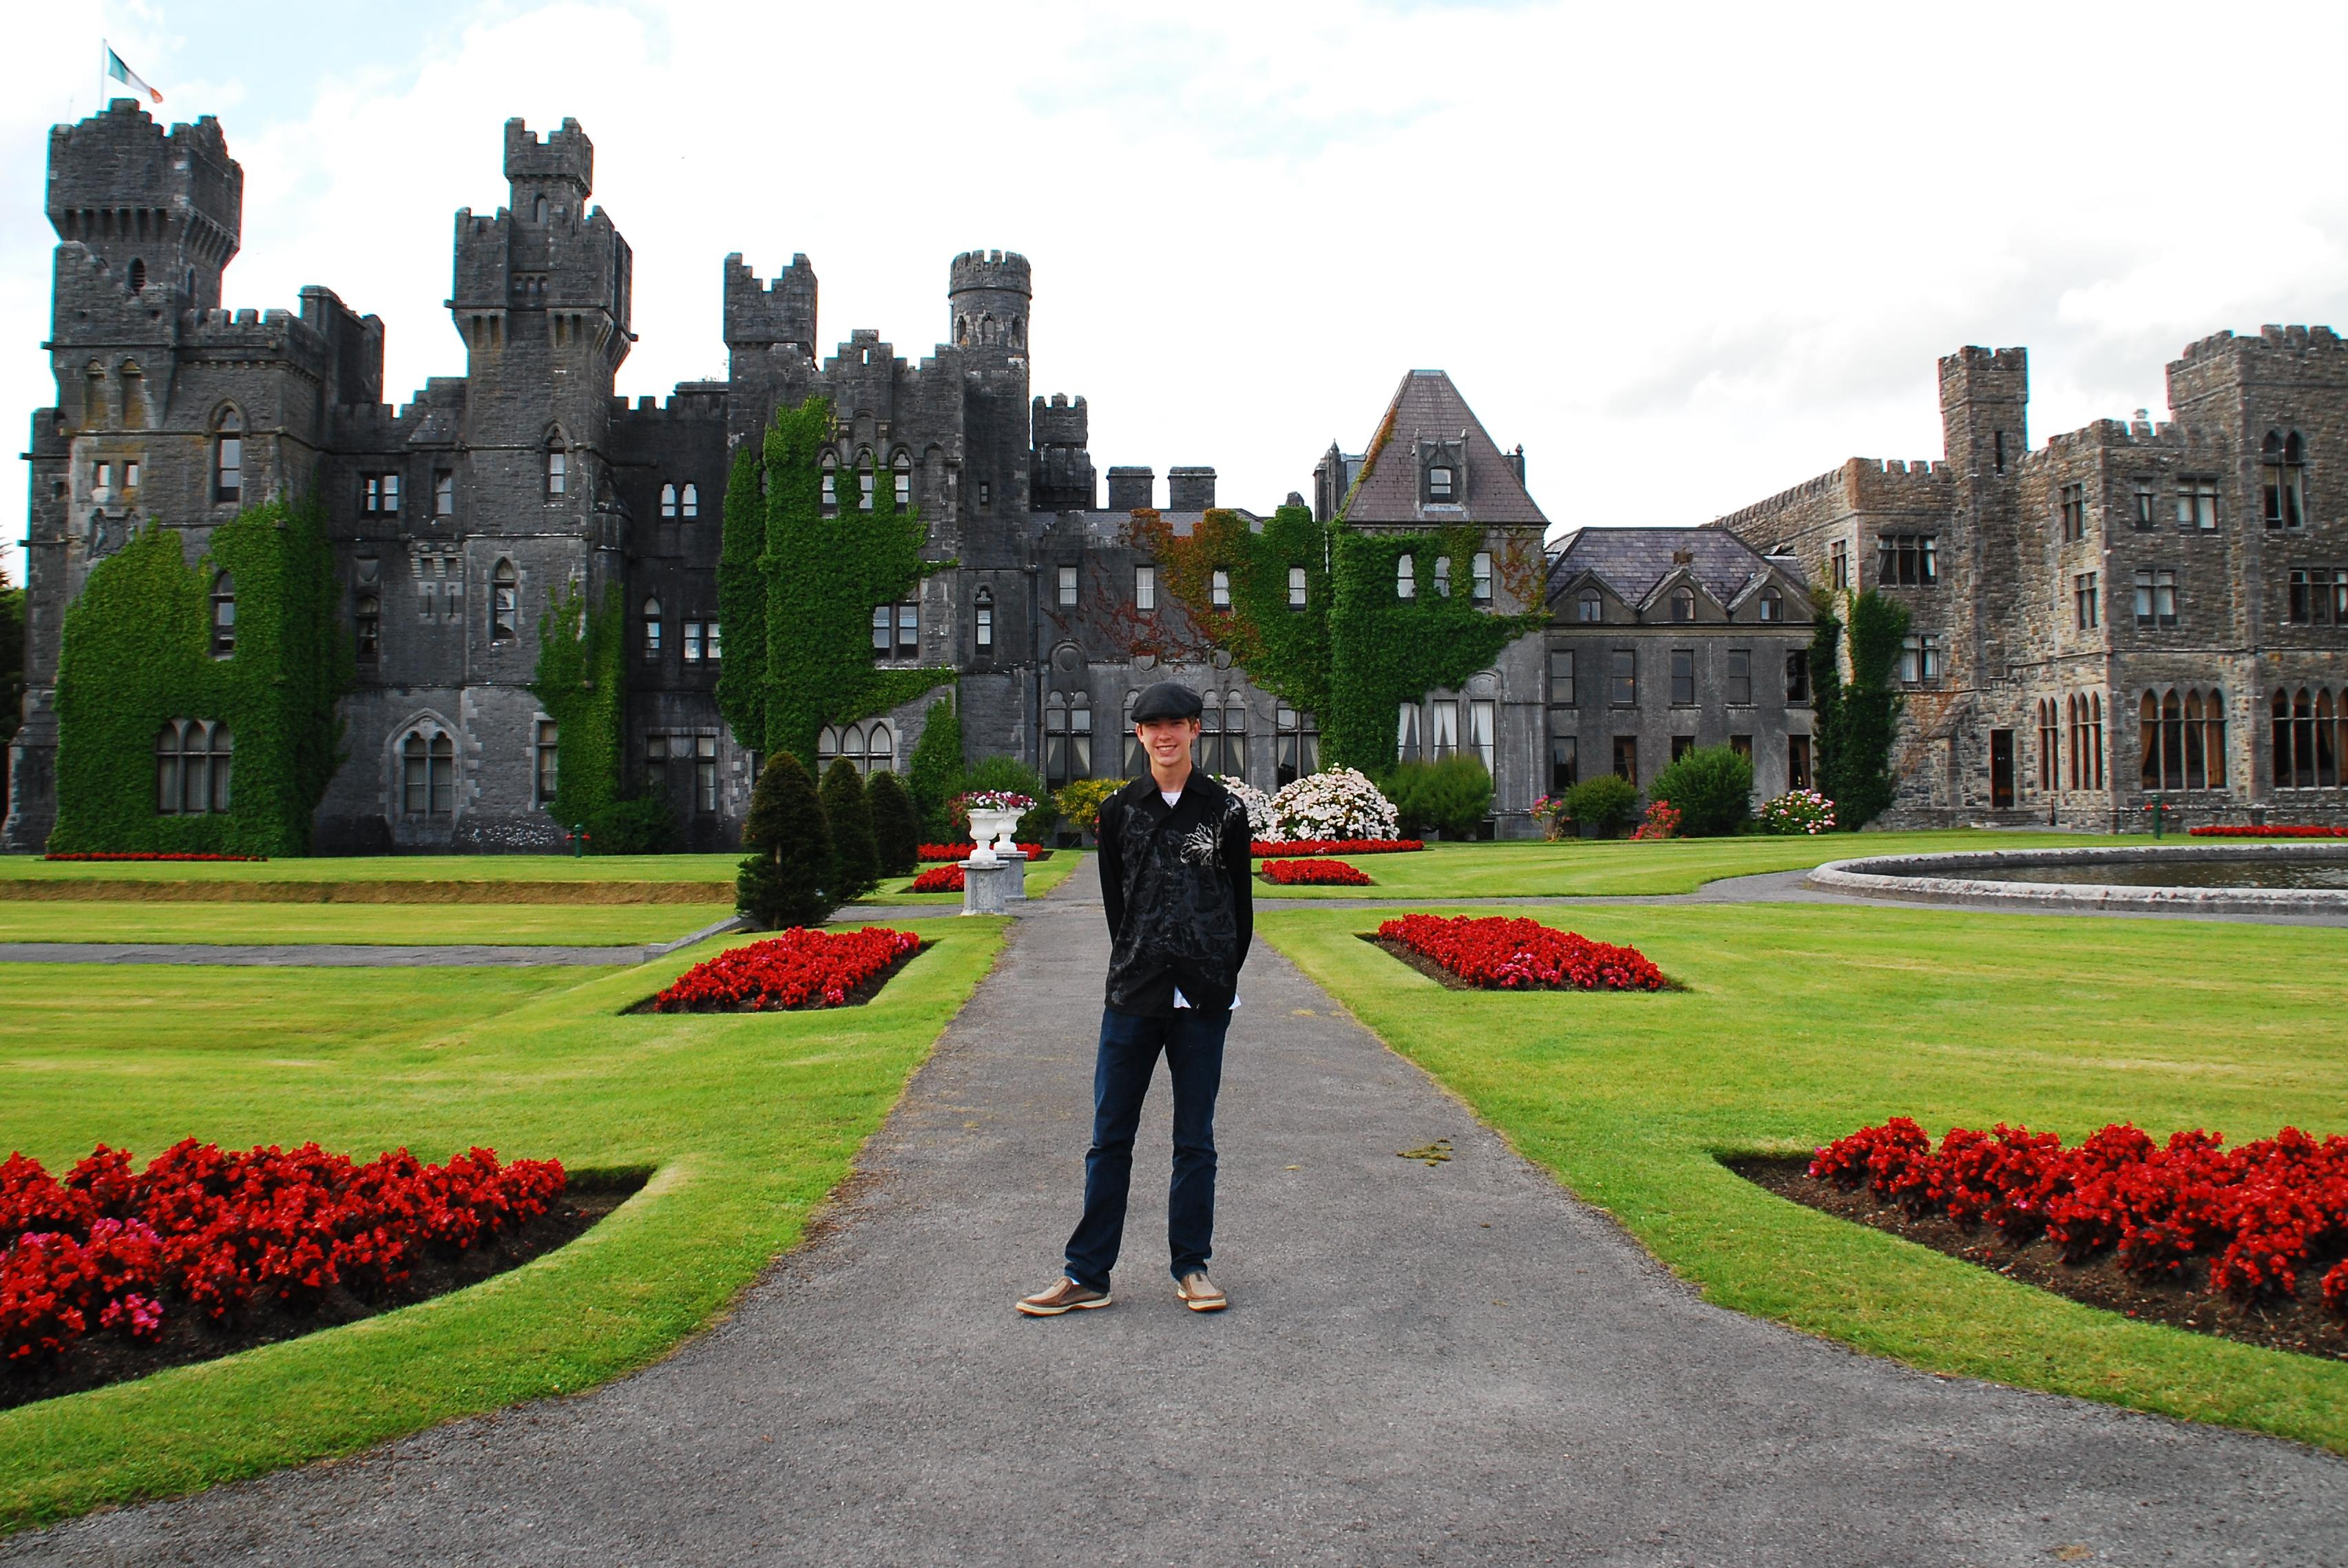 Ashford Castle: A Fairy Tale Setting In A Luxury Hotel